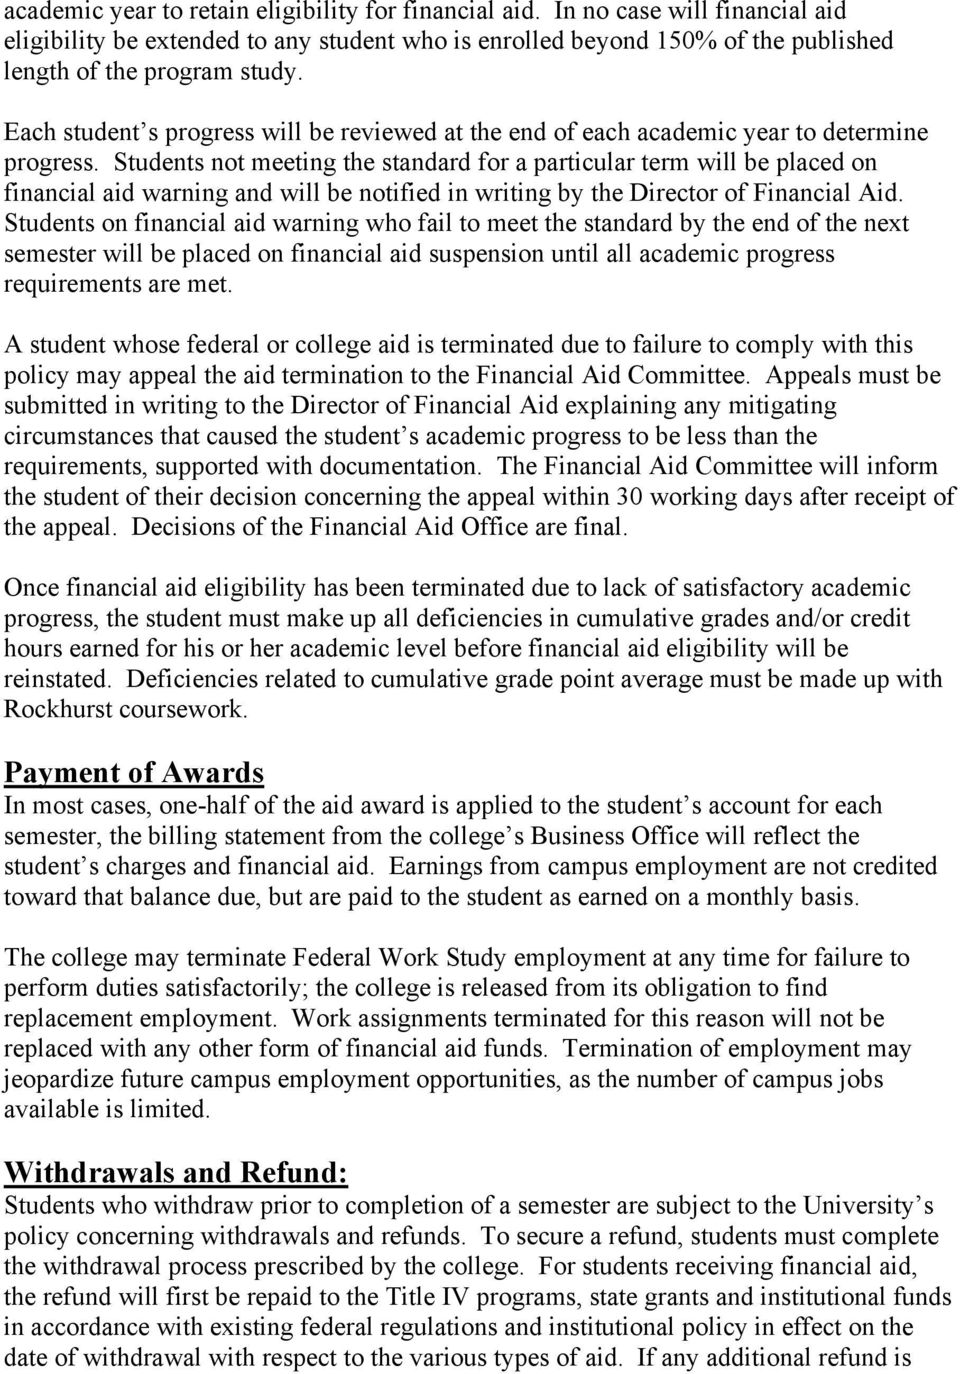 Students not meeting the standard for a particular term will be placed on financial aid warning and will be notified in writing by the Director of Financial Aid.